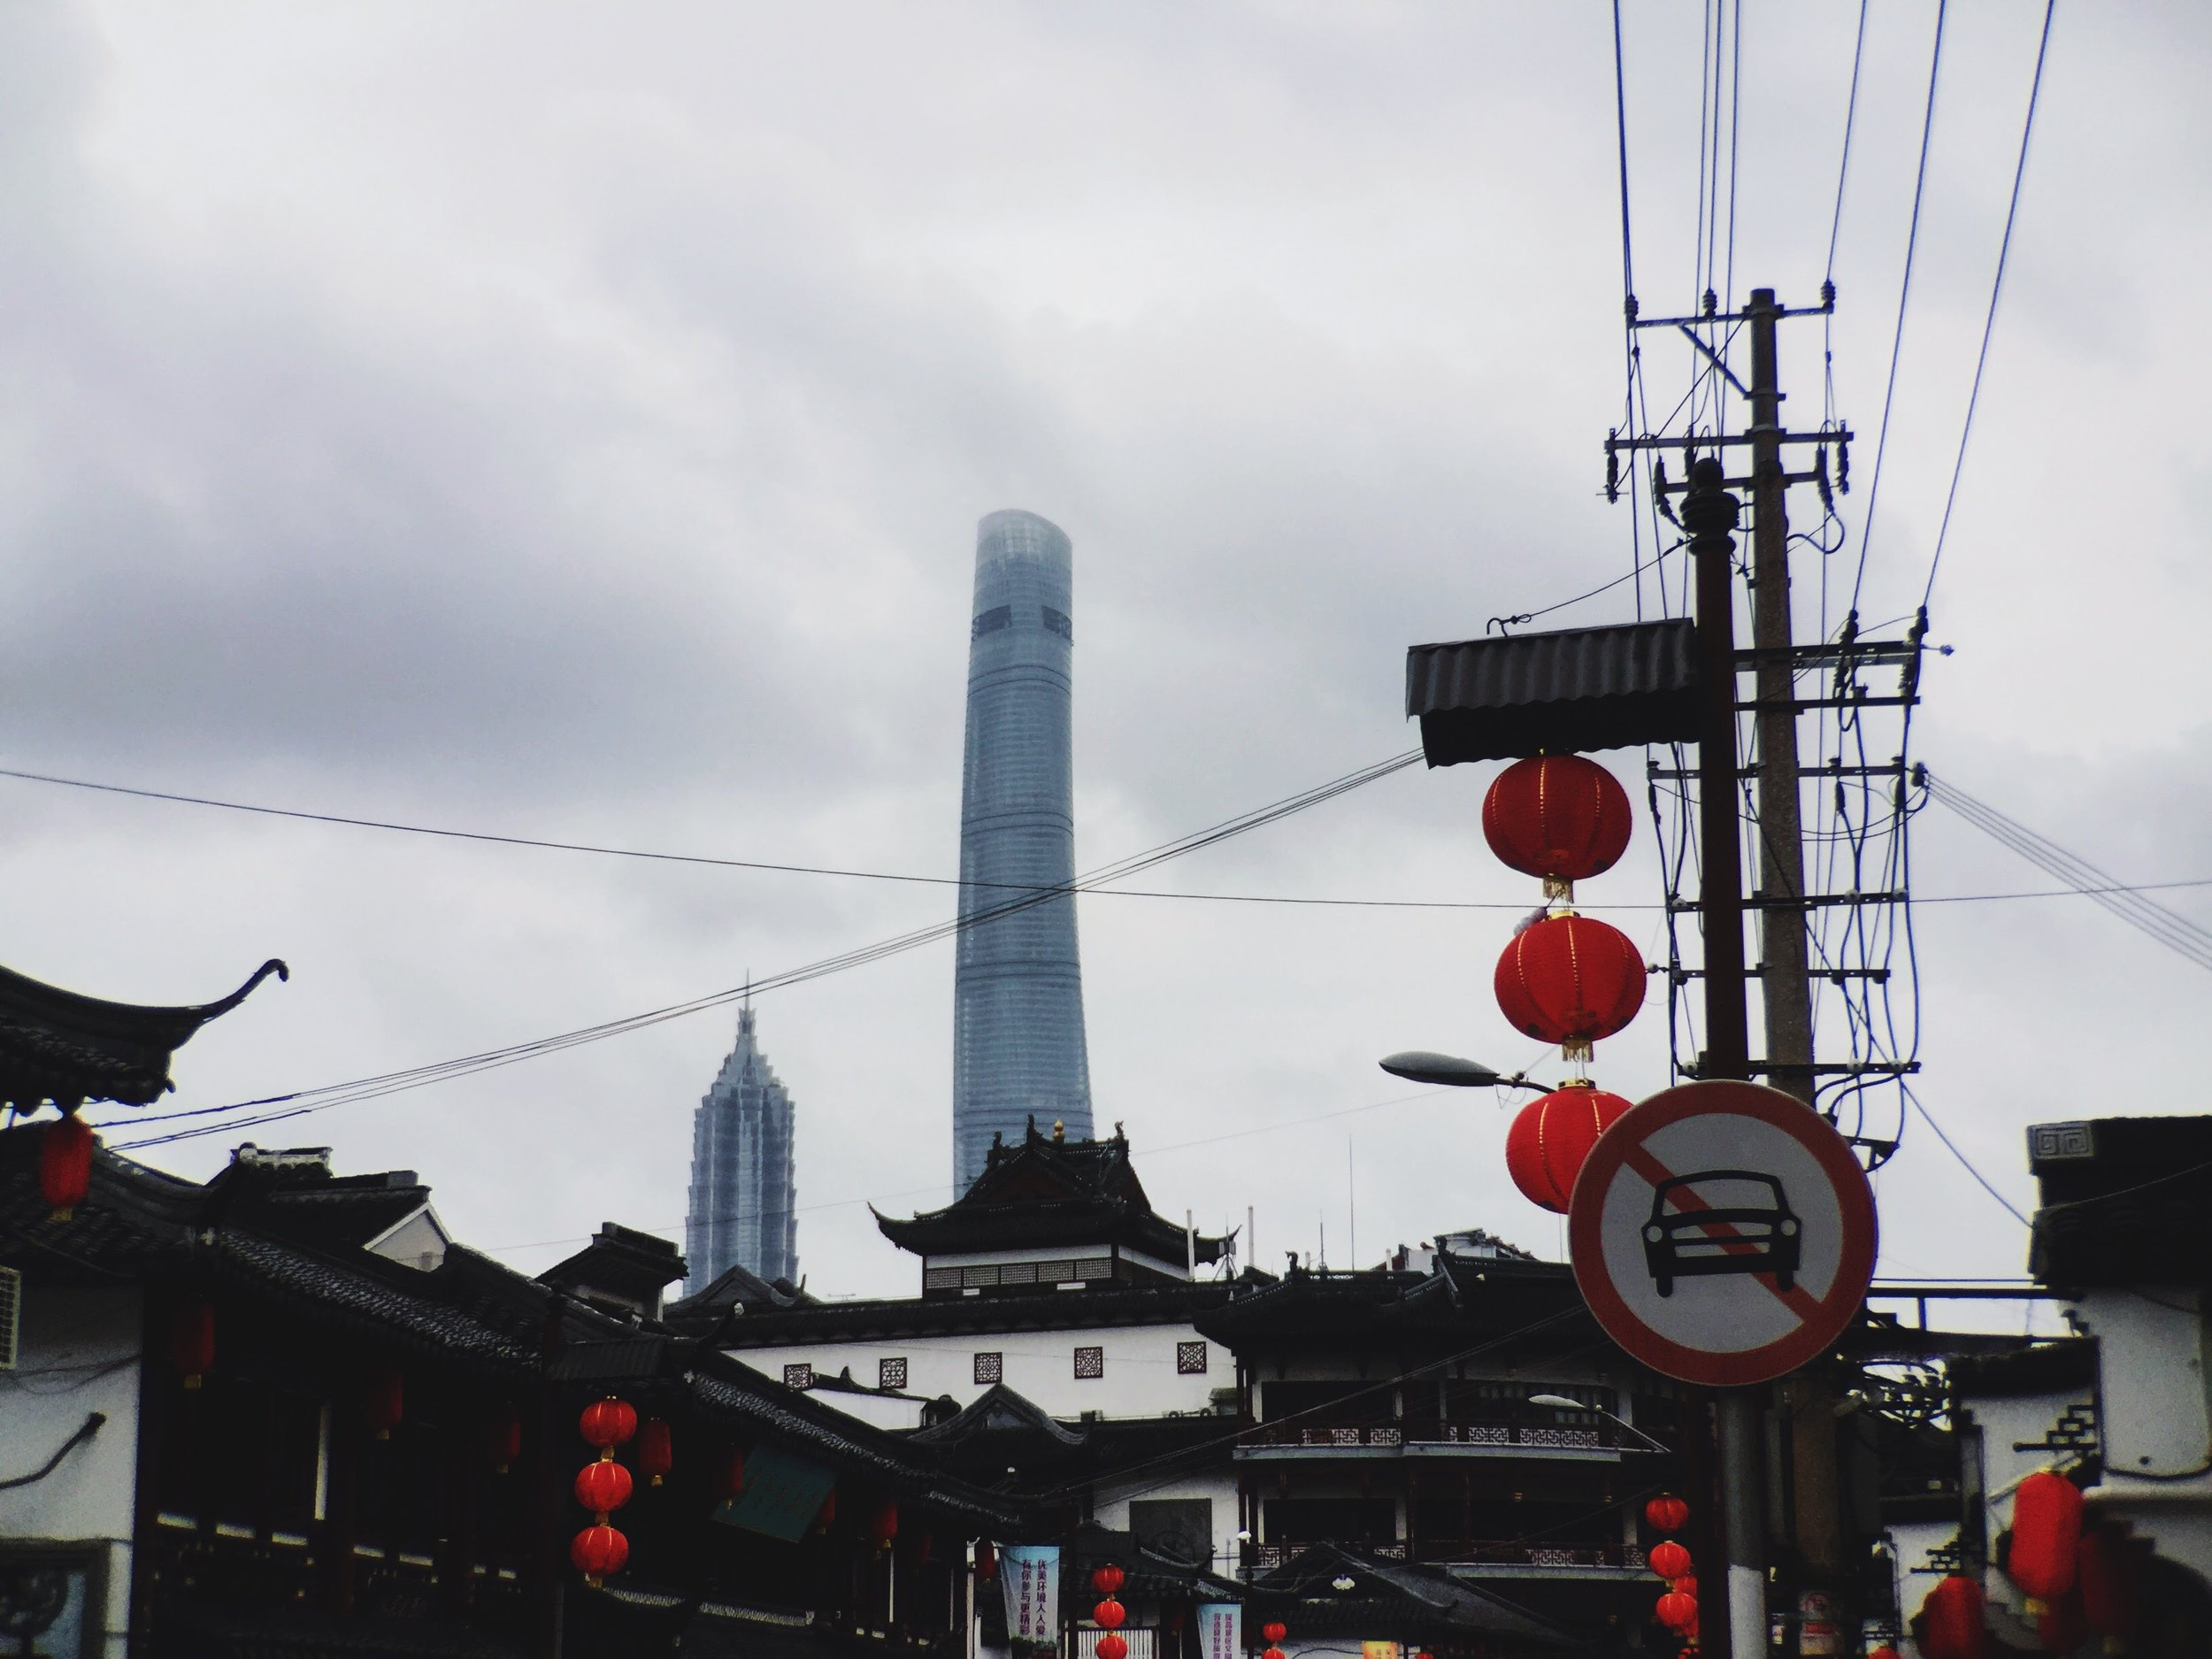 the view from yuyuan gardens